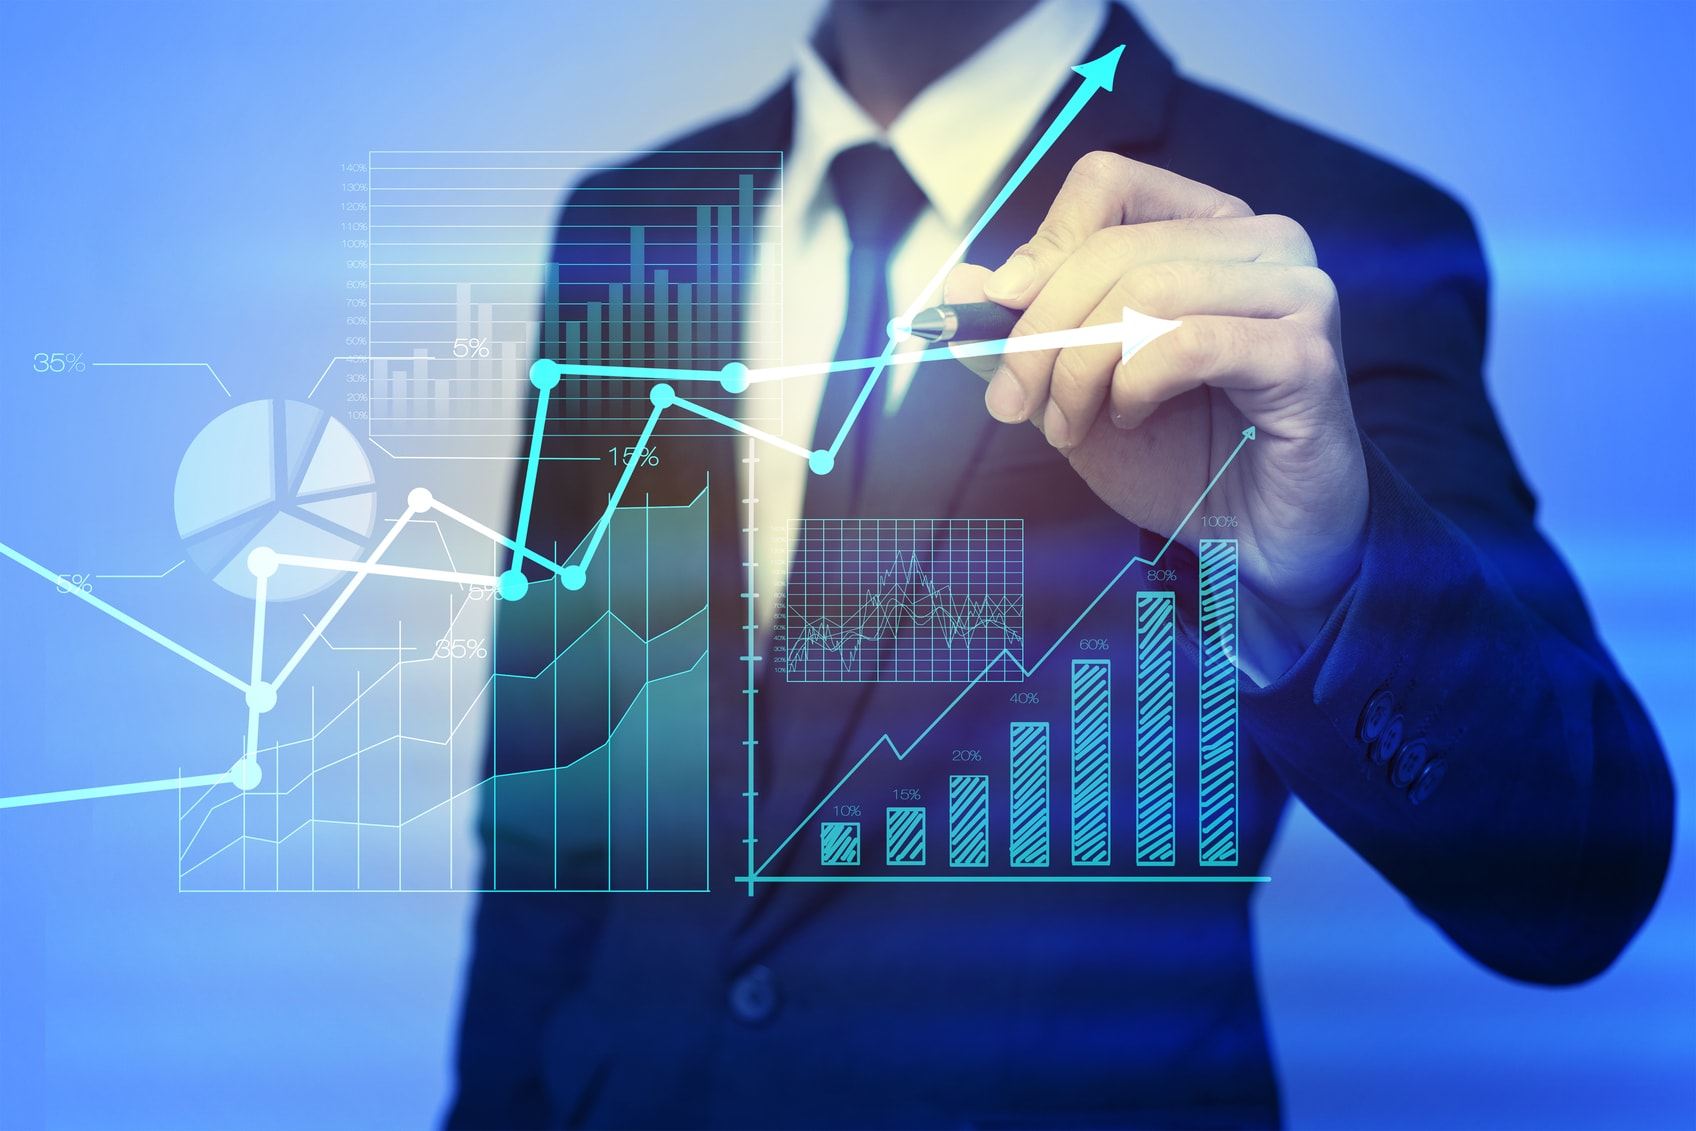 Business man plotting point on a graph and charts showing growth